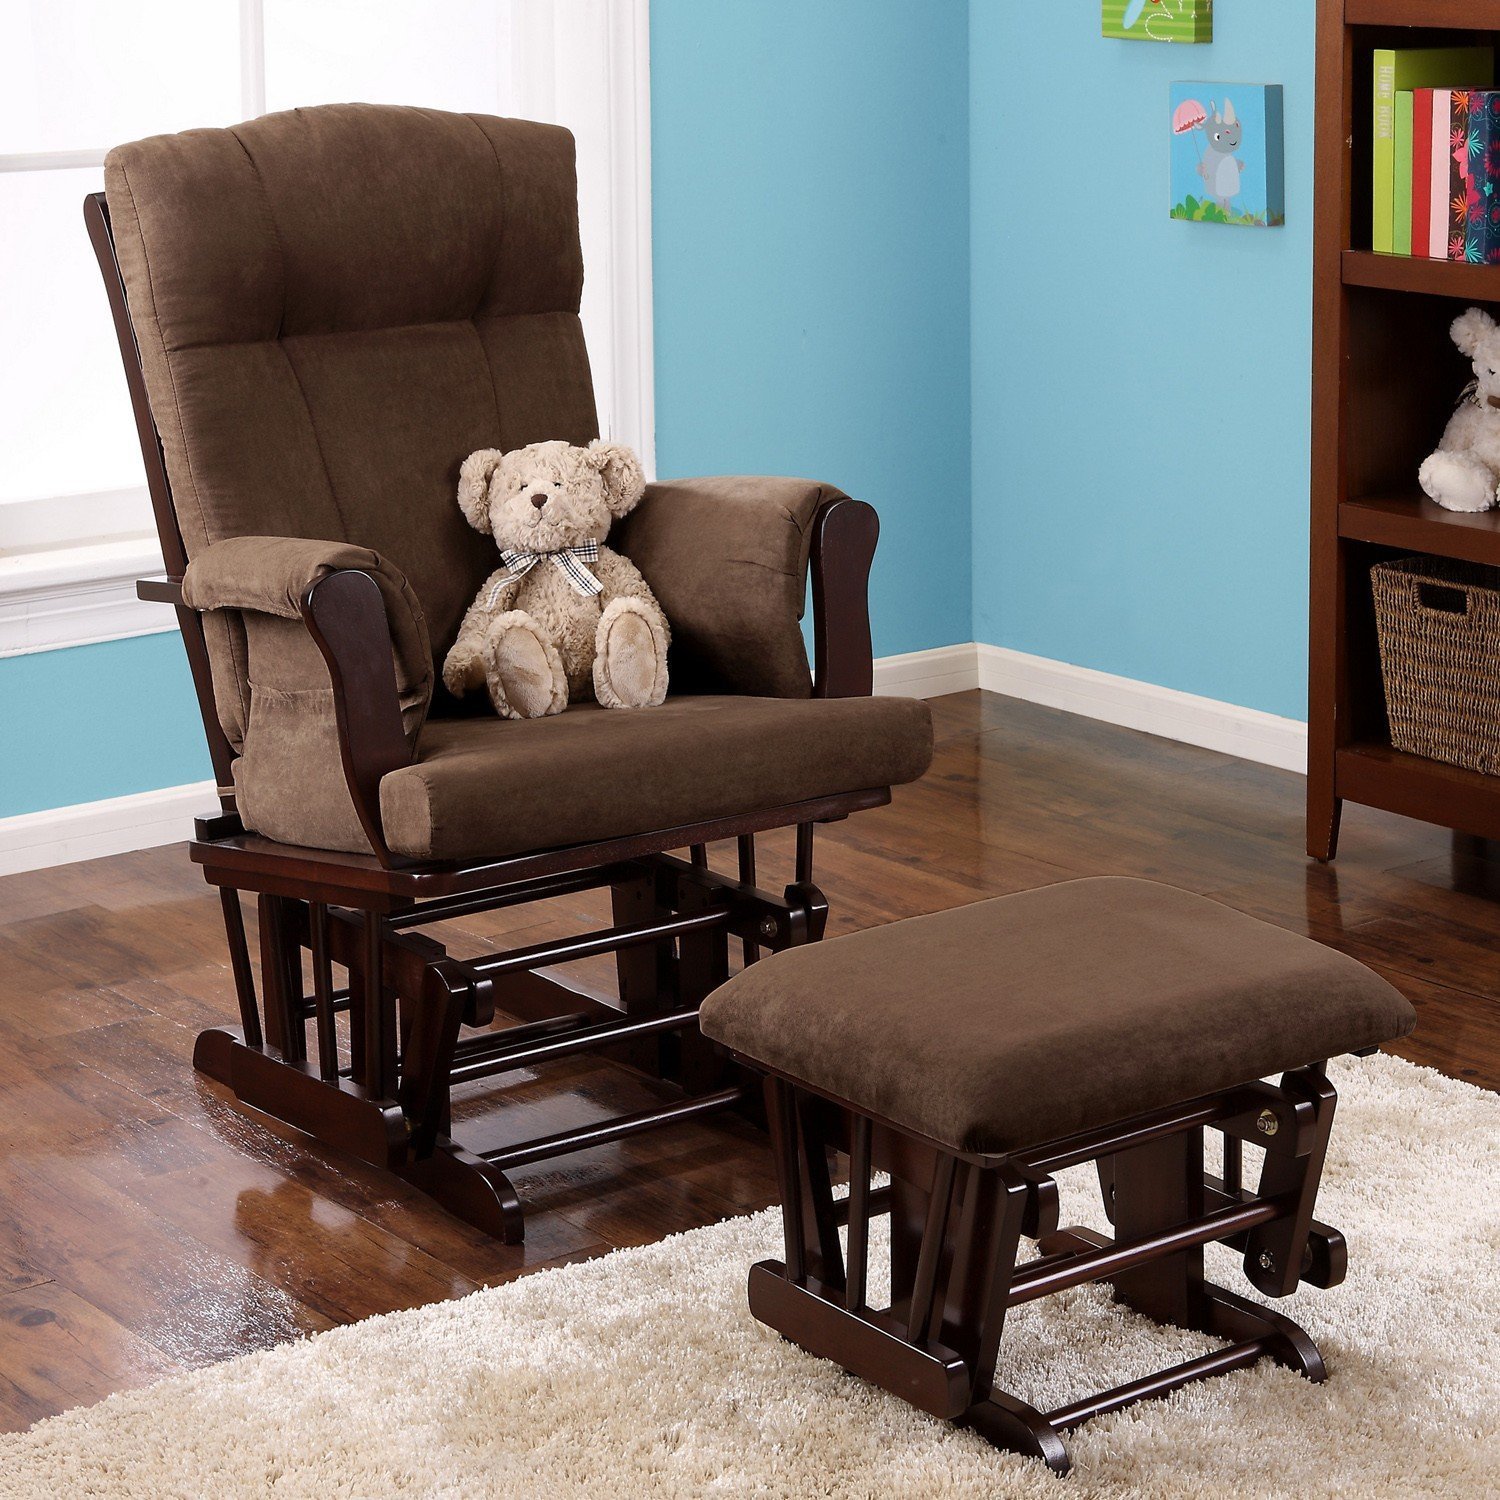 Amazon Baby Relax Glider and Ottoman Espresso Baby